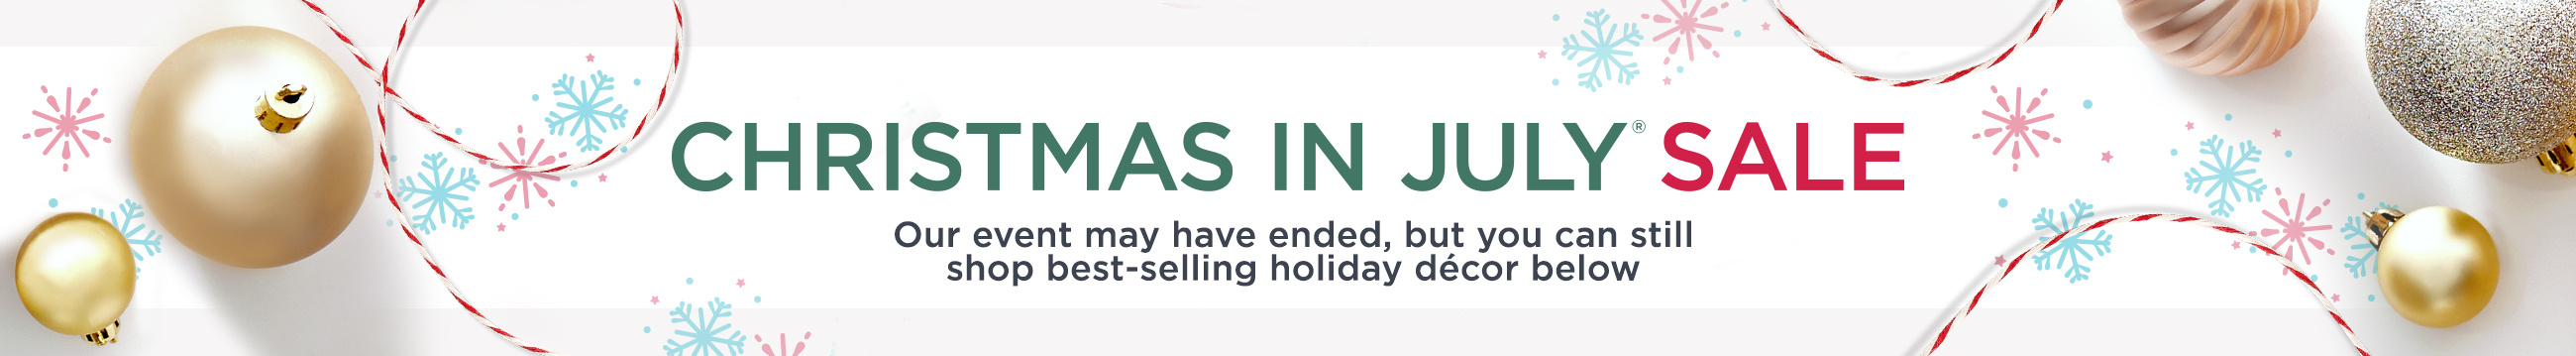 Christmas in July® Sale.   Our event may have ended, but you can still shop best-selling holiday décor below